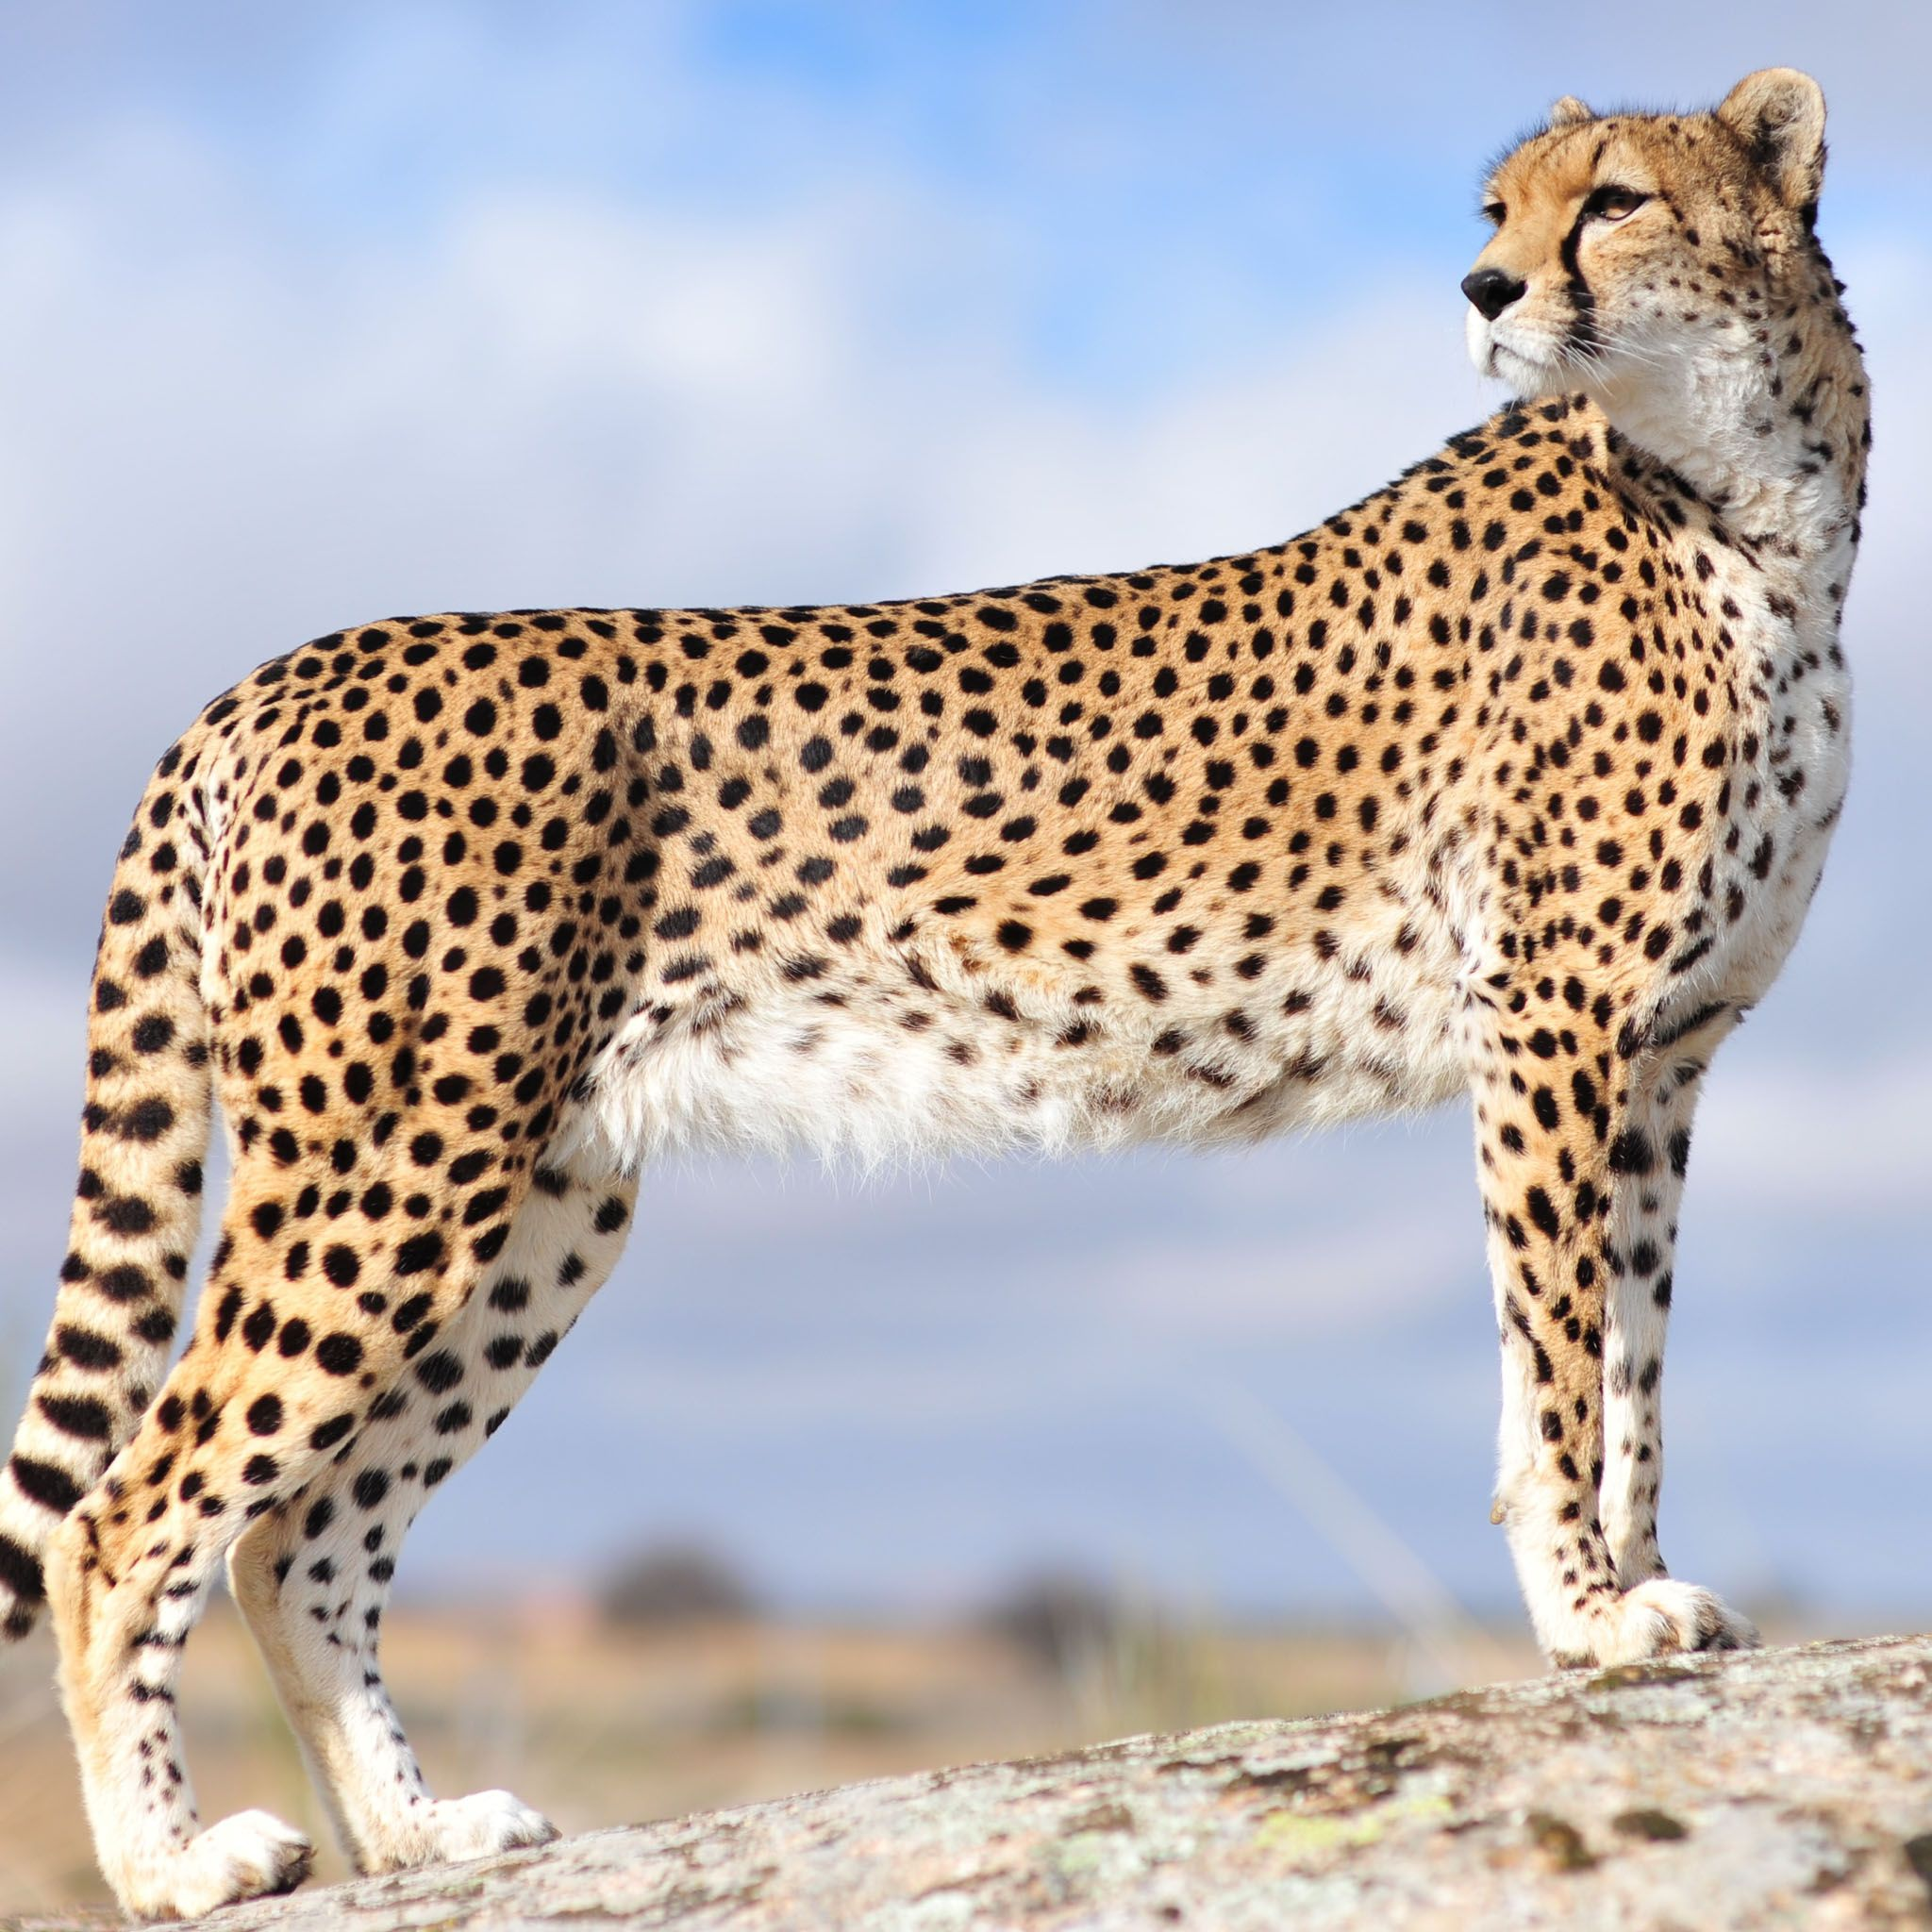 Majestic Cheetah Cat Tap to see more cute animal iPhone